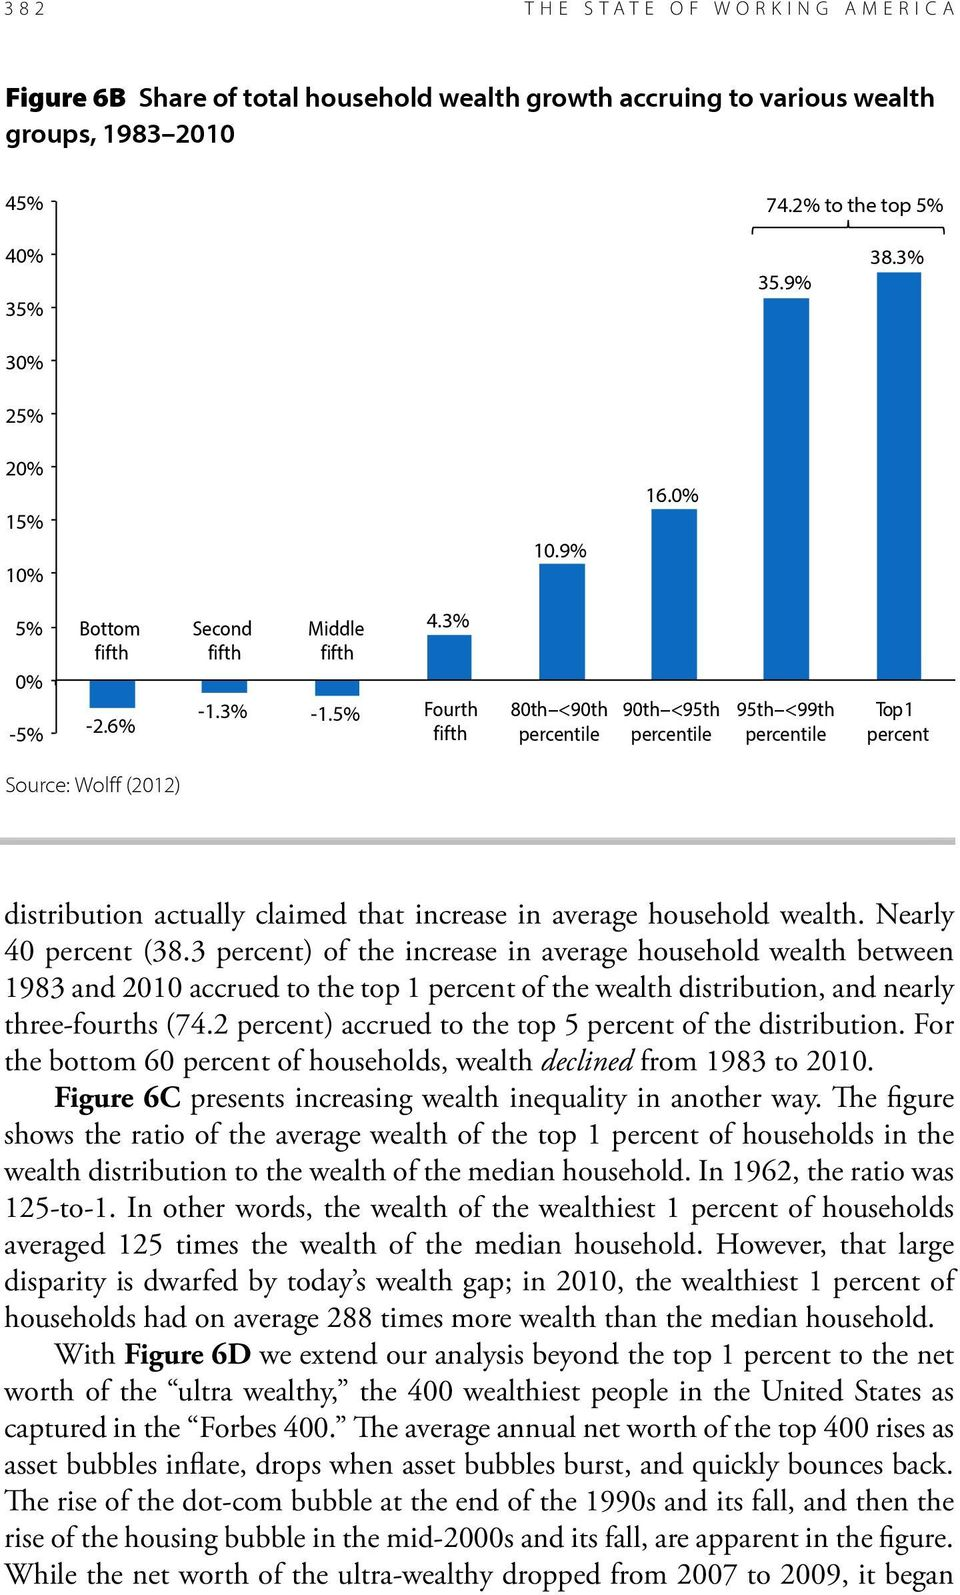 2 percent) accrued to the top 5 percent of the distribution. For the bottom 60 percent of households, wealth declined from 1983 to 2010. Figure 6C presents increasing wealth inequality in another way.